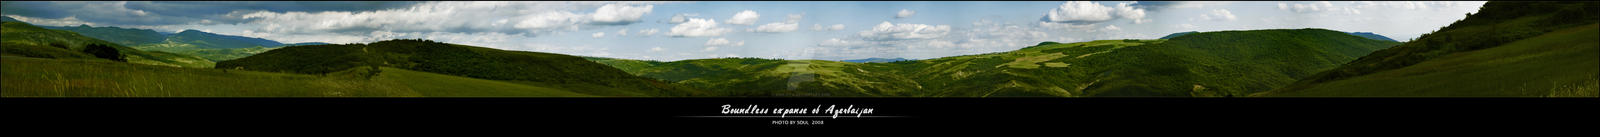 Expanses of Azerbaijan by SouLitta